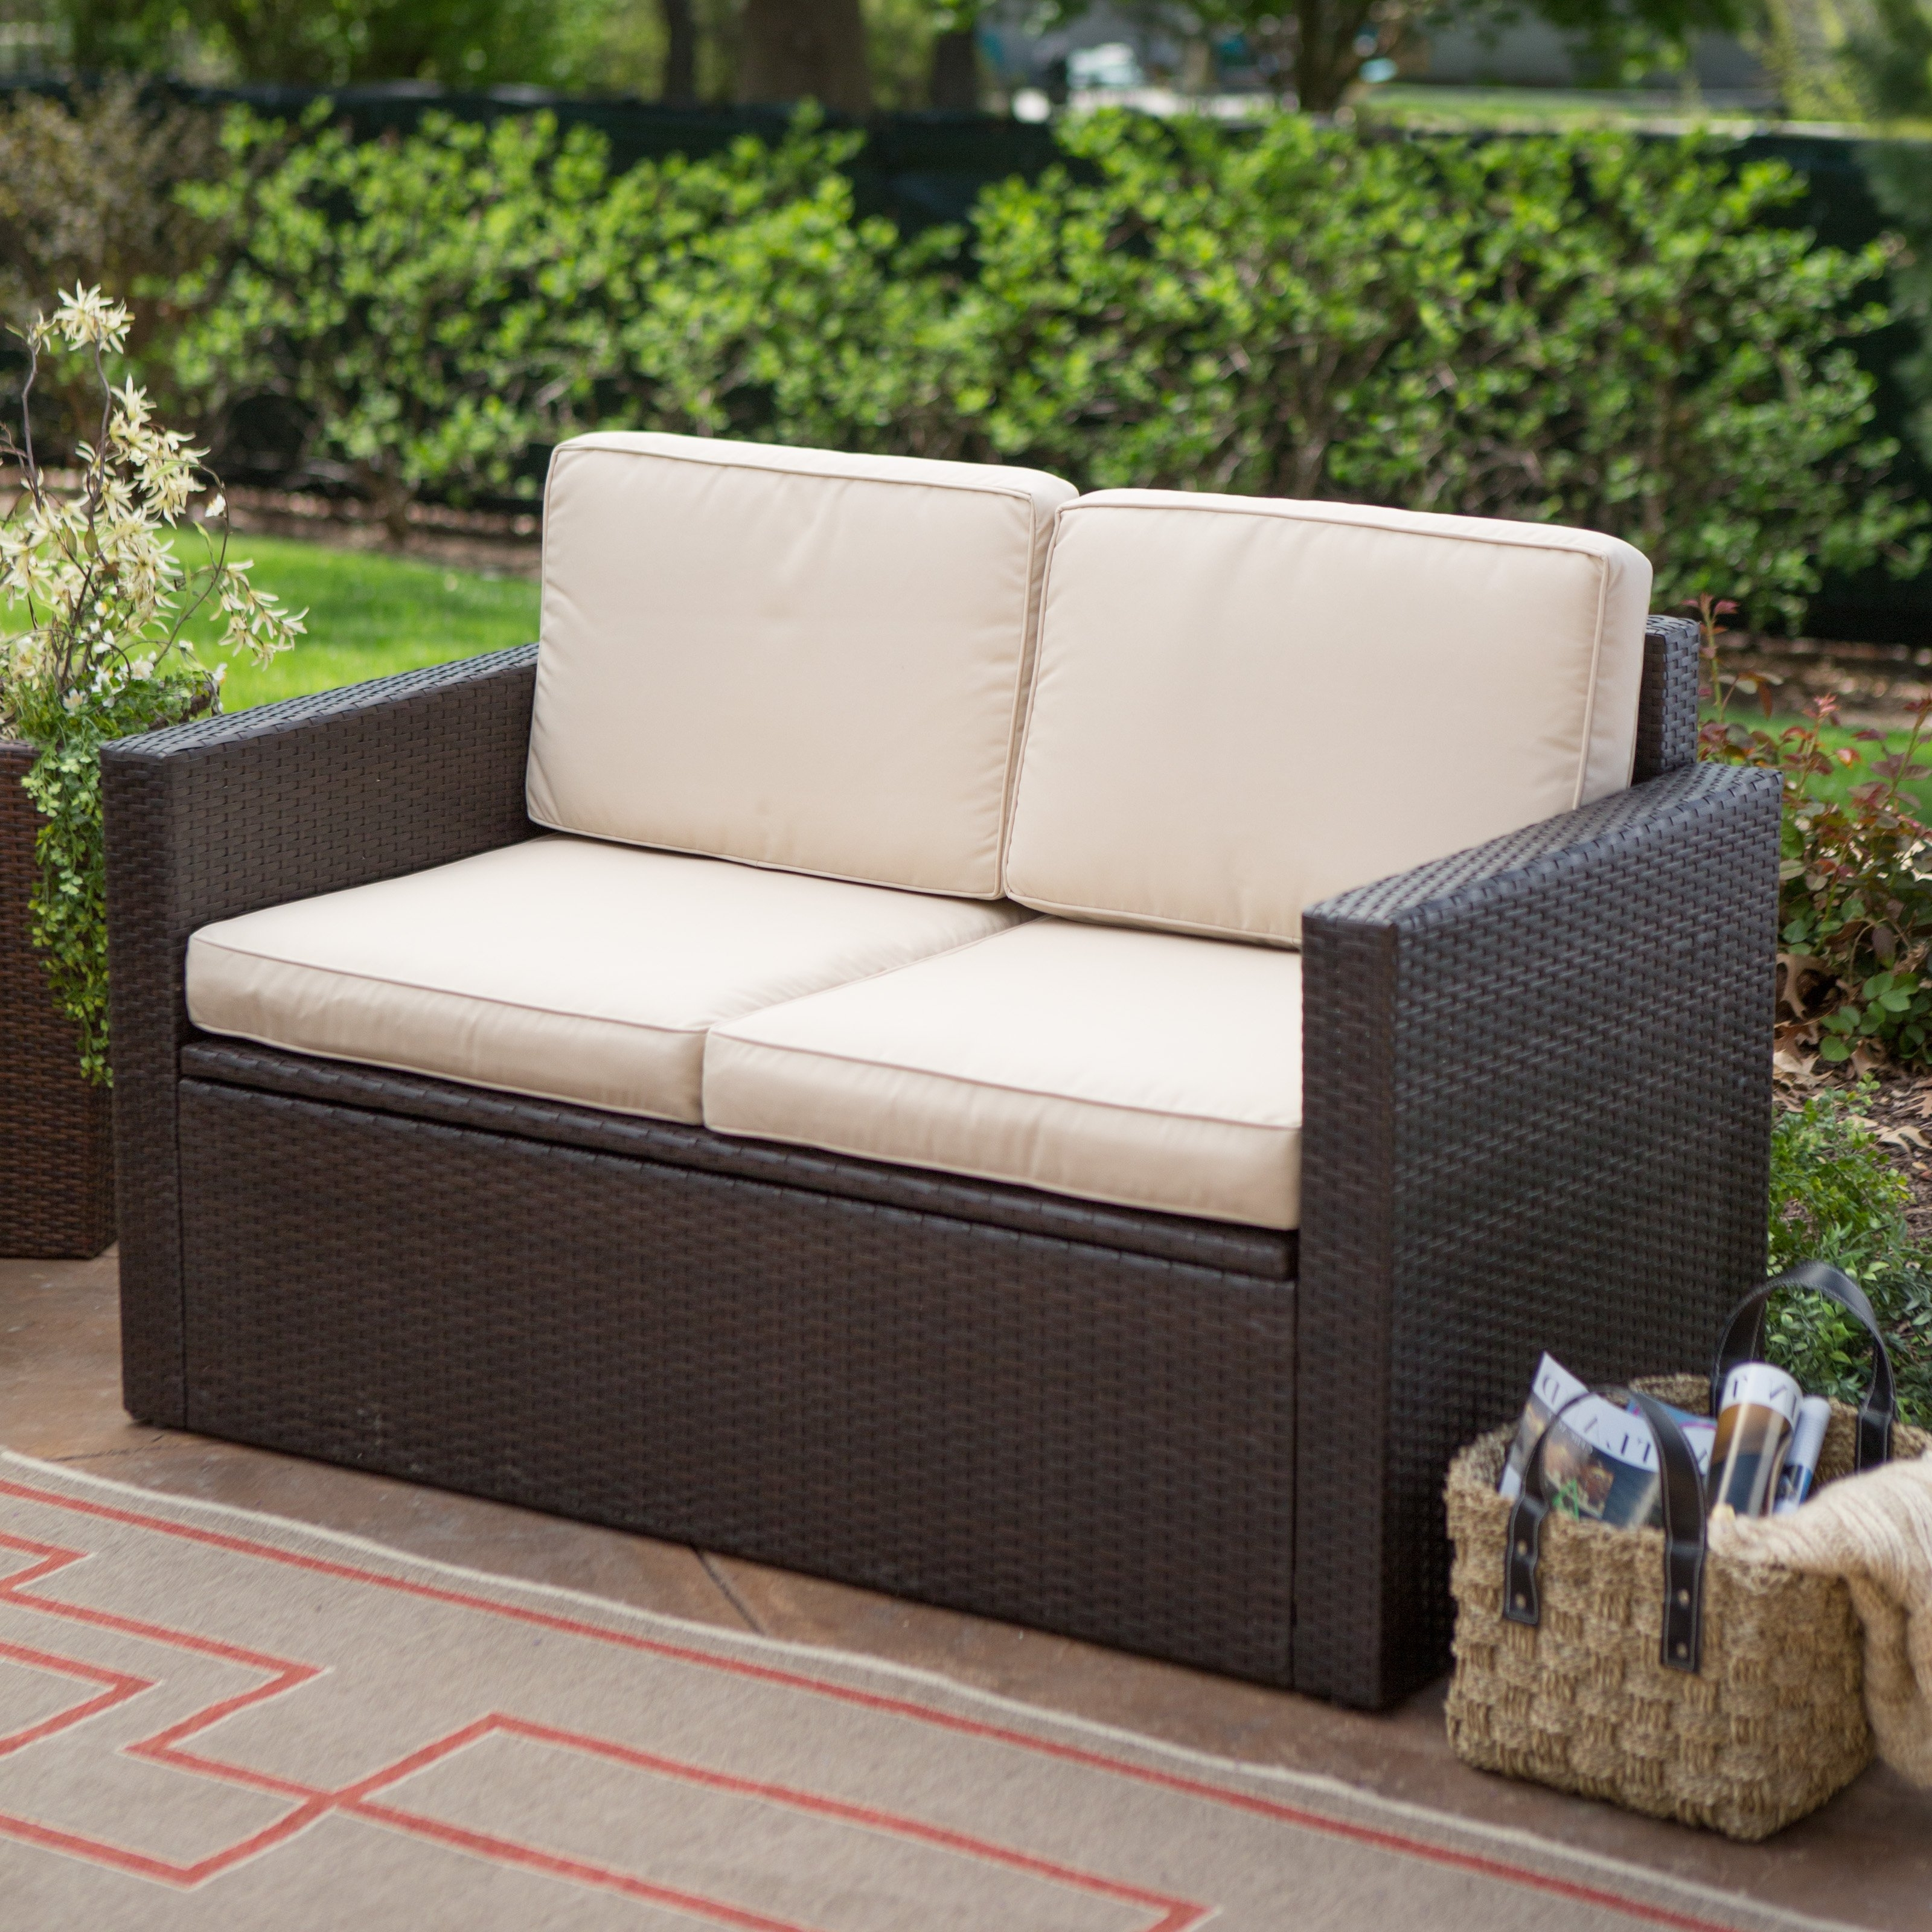 Coral Coast Berea Wicker 4 Piece Conversation Set With Storage Inside Best And Newest Patio Conversation Set With Storage (View 5 of 15)